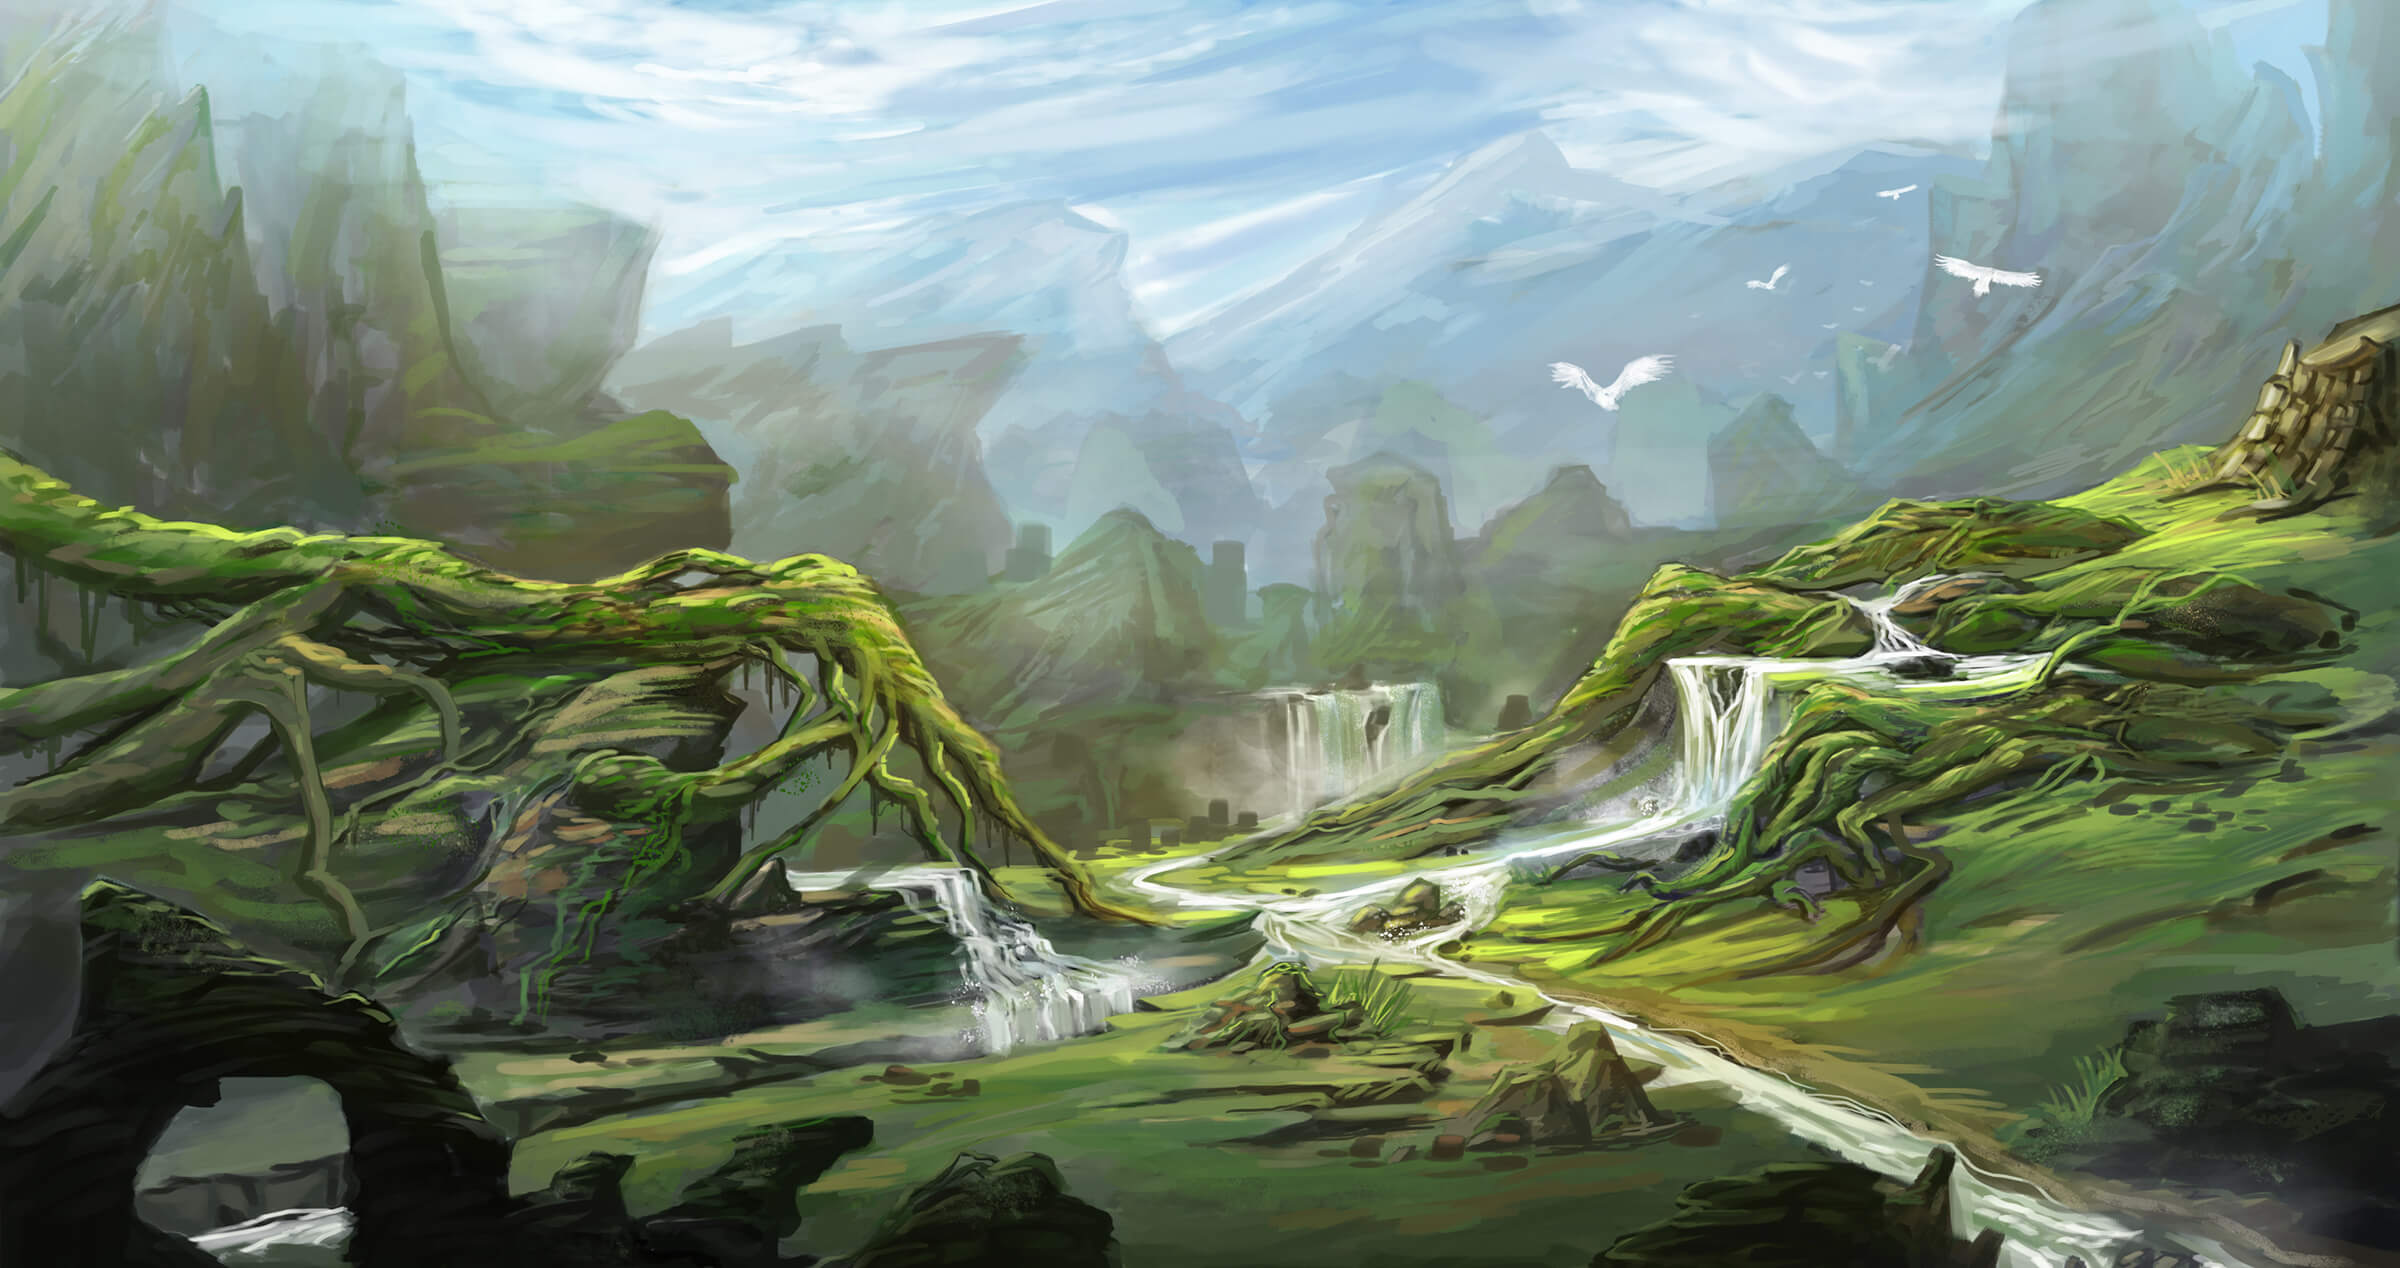 A river valley crisscrossed by shallow waterfalls and branched over by moss-covered roots from some enormous, unseen tree.